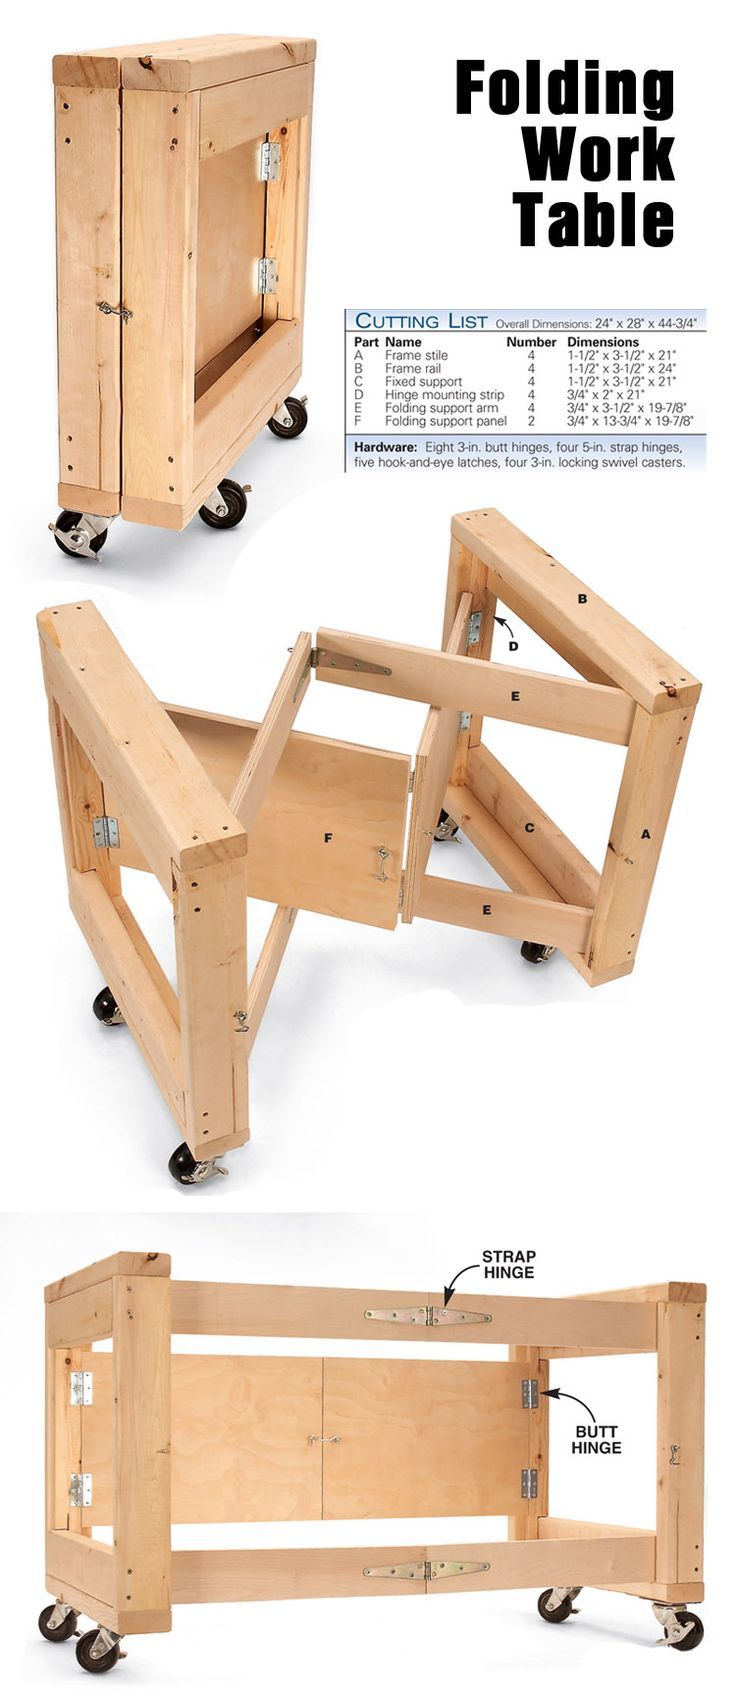 Wunderbar Space Saving Folding Work Table  Http://www.popularwoodworking.com/projects/aw Extra 4512 Folding Table Base: